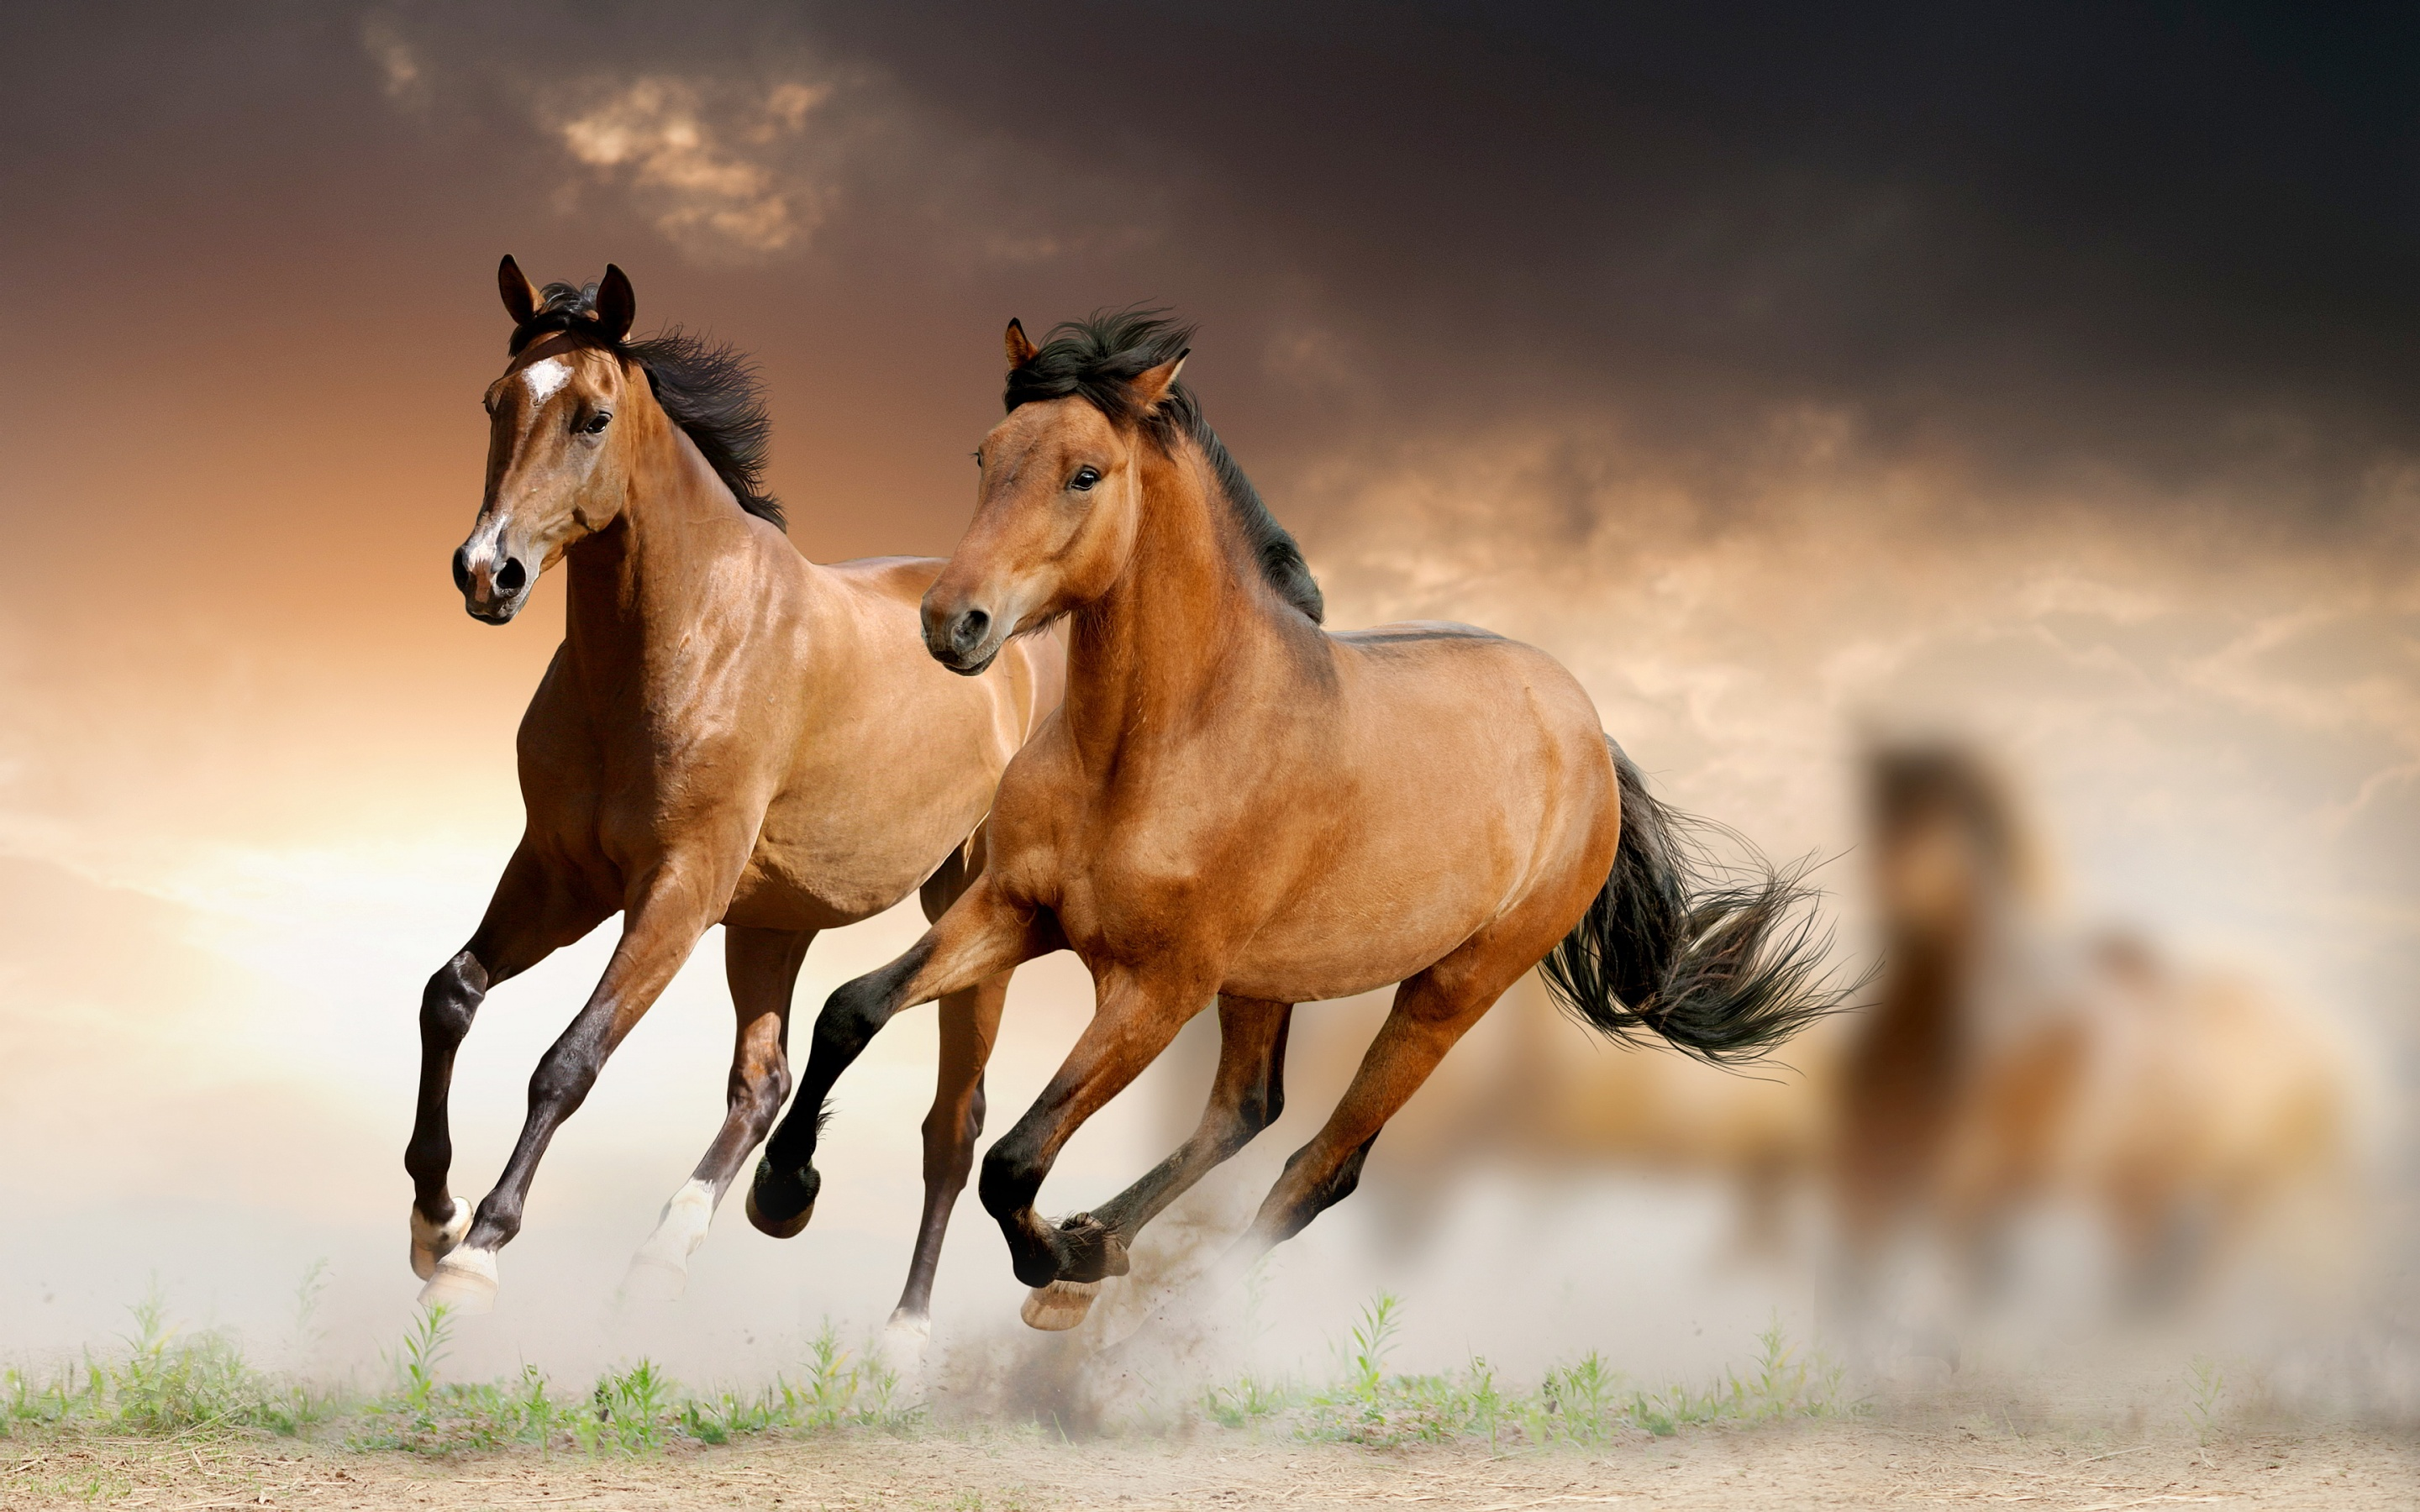 15 Beautiful HD Horse Wallpapers